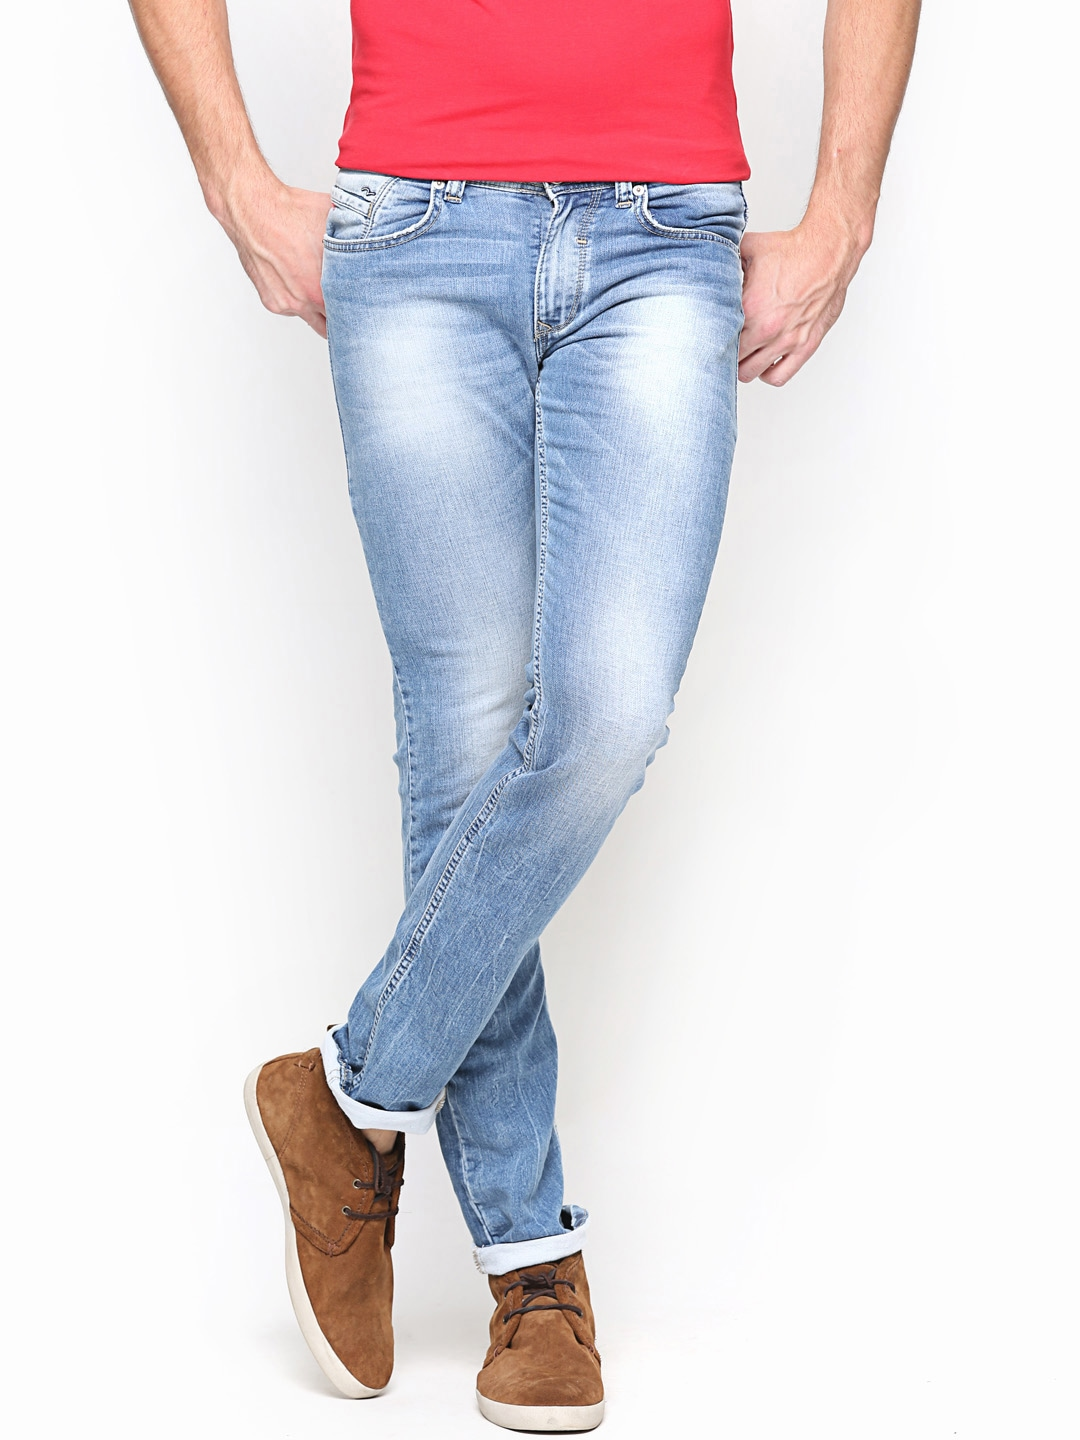 Skinny jeans for men have been popular for years now, ever since the 90's and mid 's faded out and our clothes started getting slimmer (thank goodness!), but what fashionable men all around seem to be favouring right now is the super skinny jean. Made popular by the likes of Russell Brand and Harry Styles, the extreme skinny jean has.